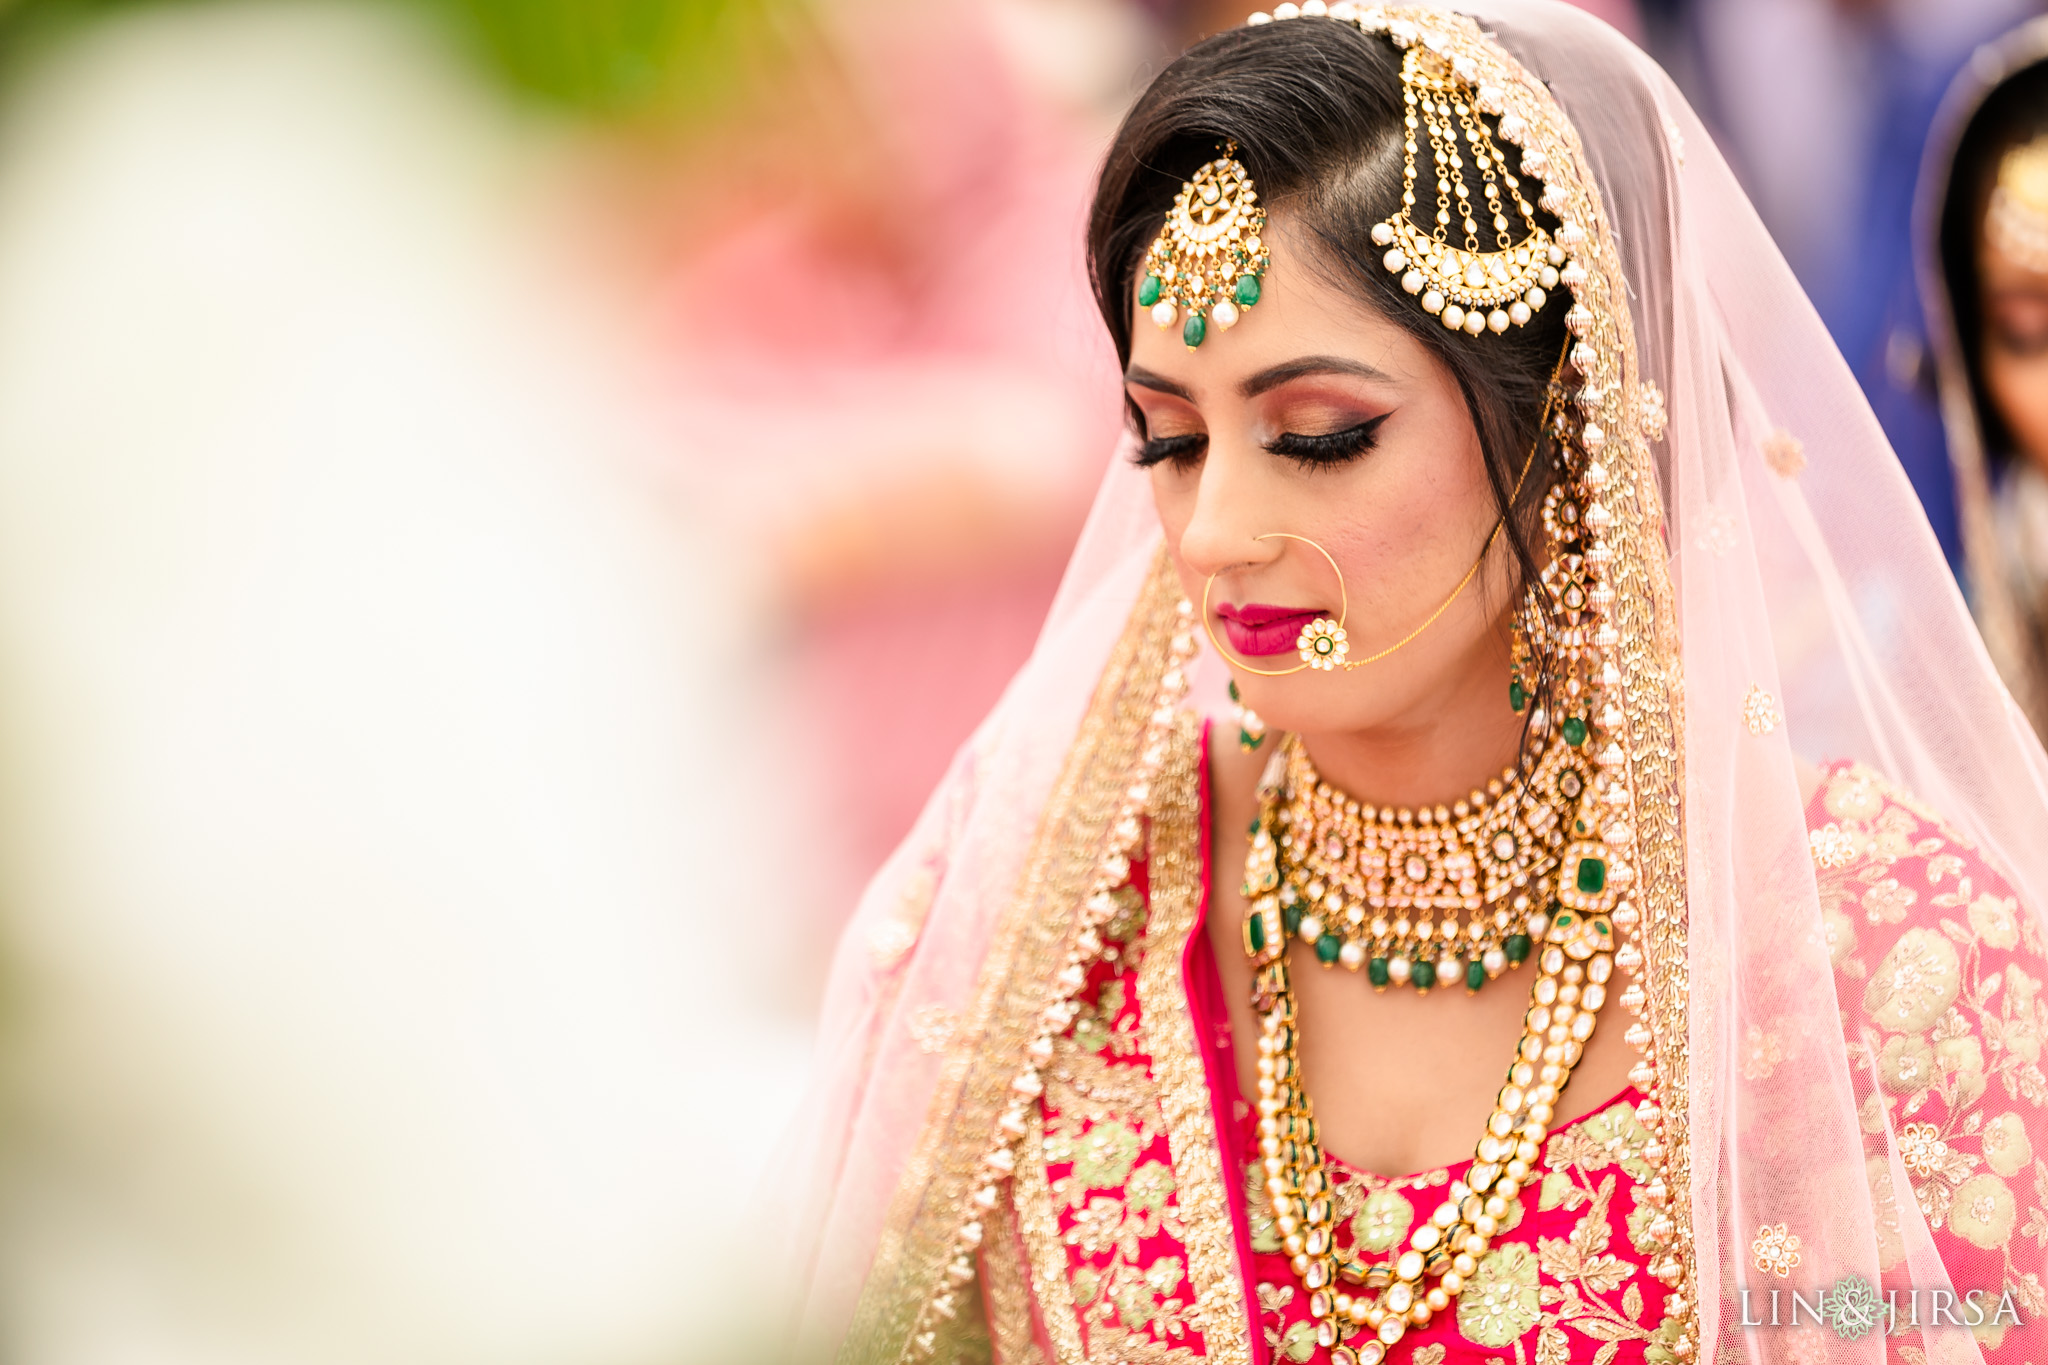 20 Coronado Resort and Spa San Diego Punjabi Wedding Photography